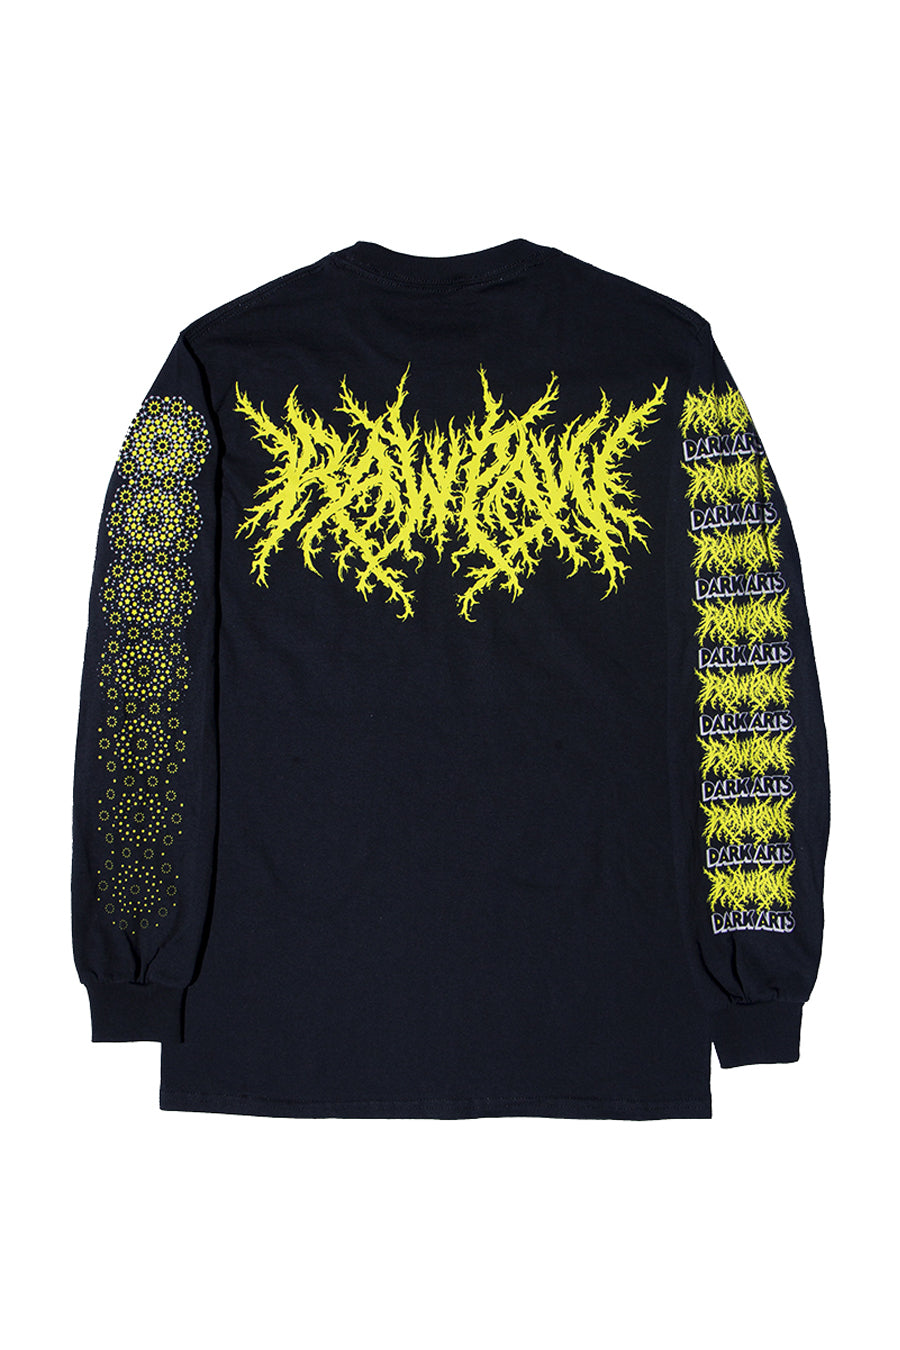 Dark Arts - Long Sleeve